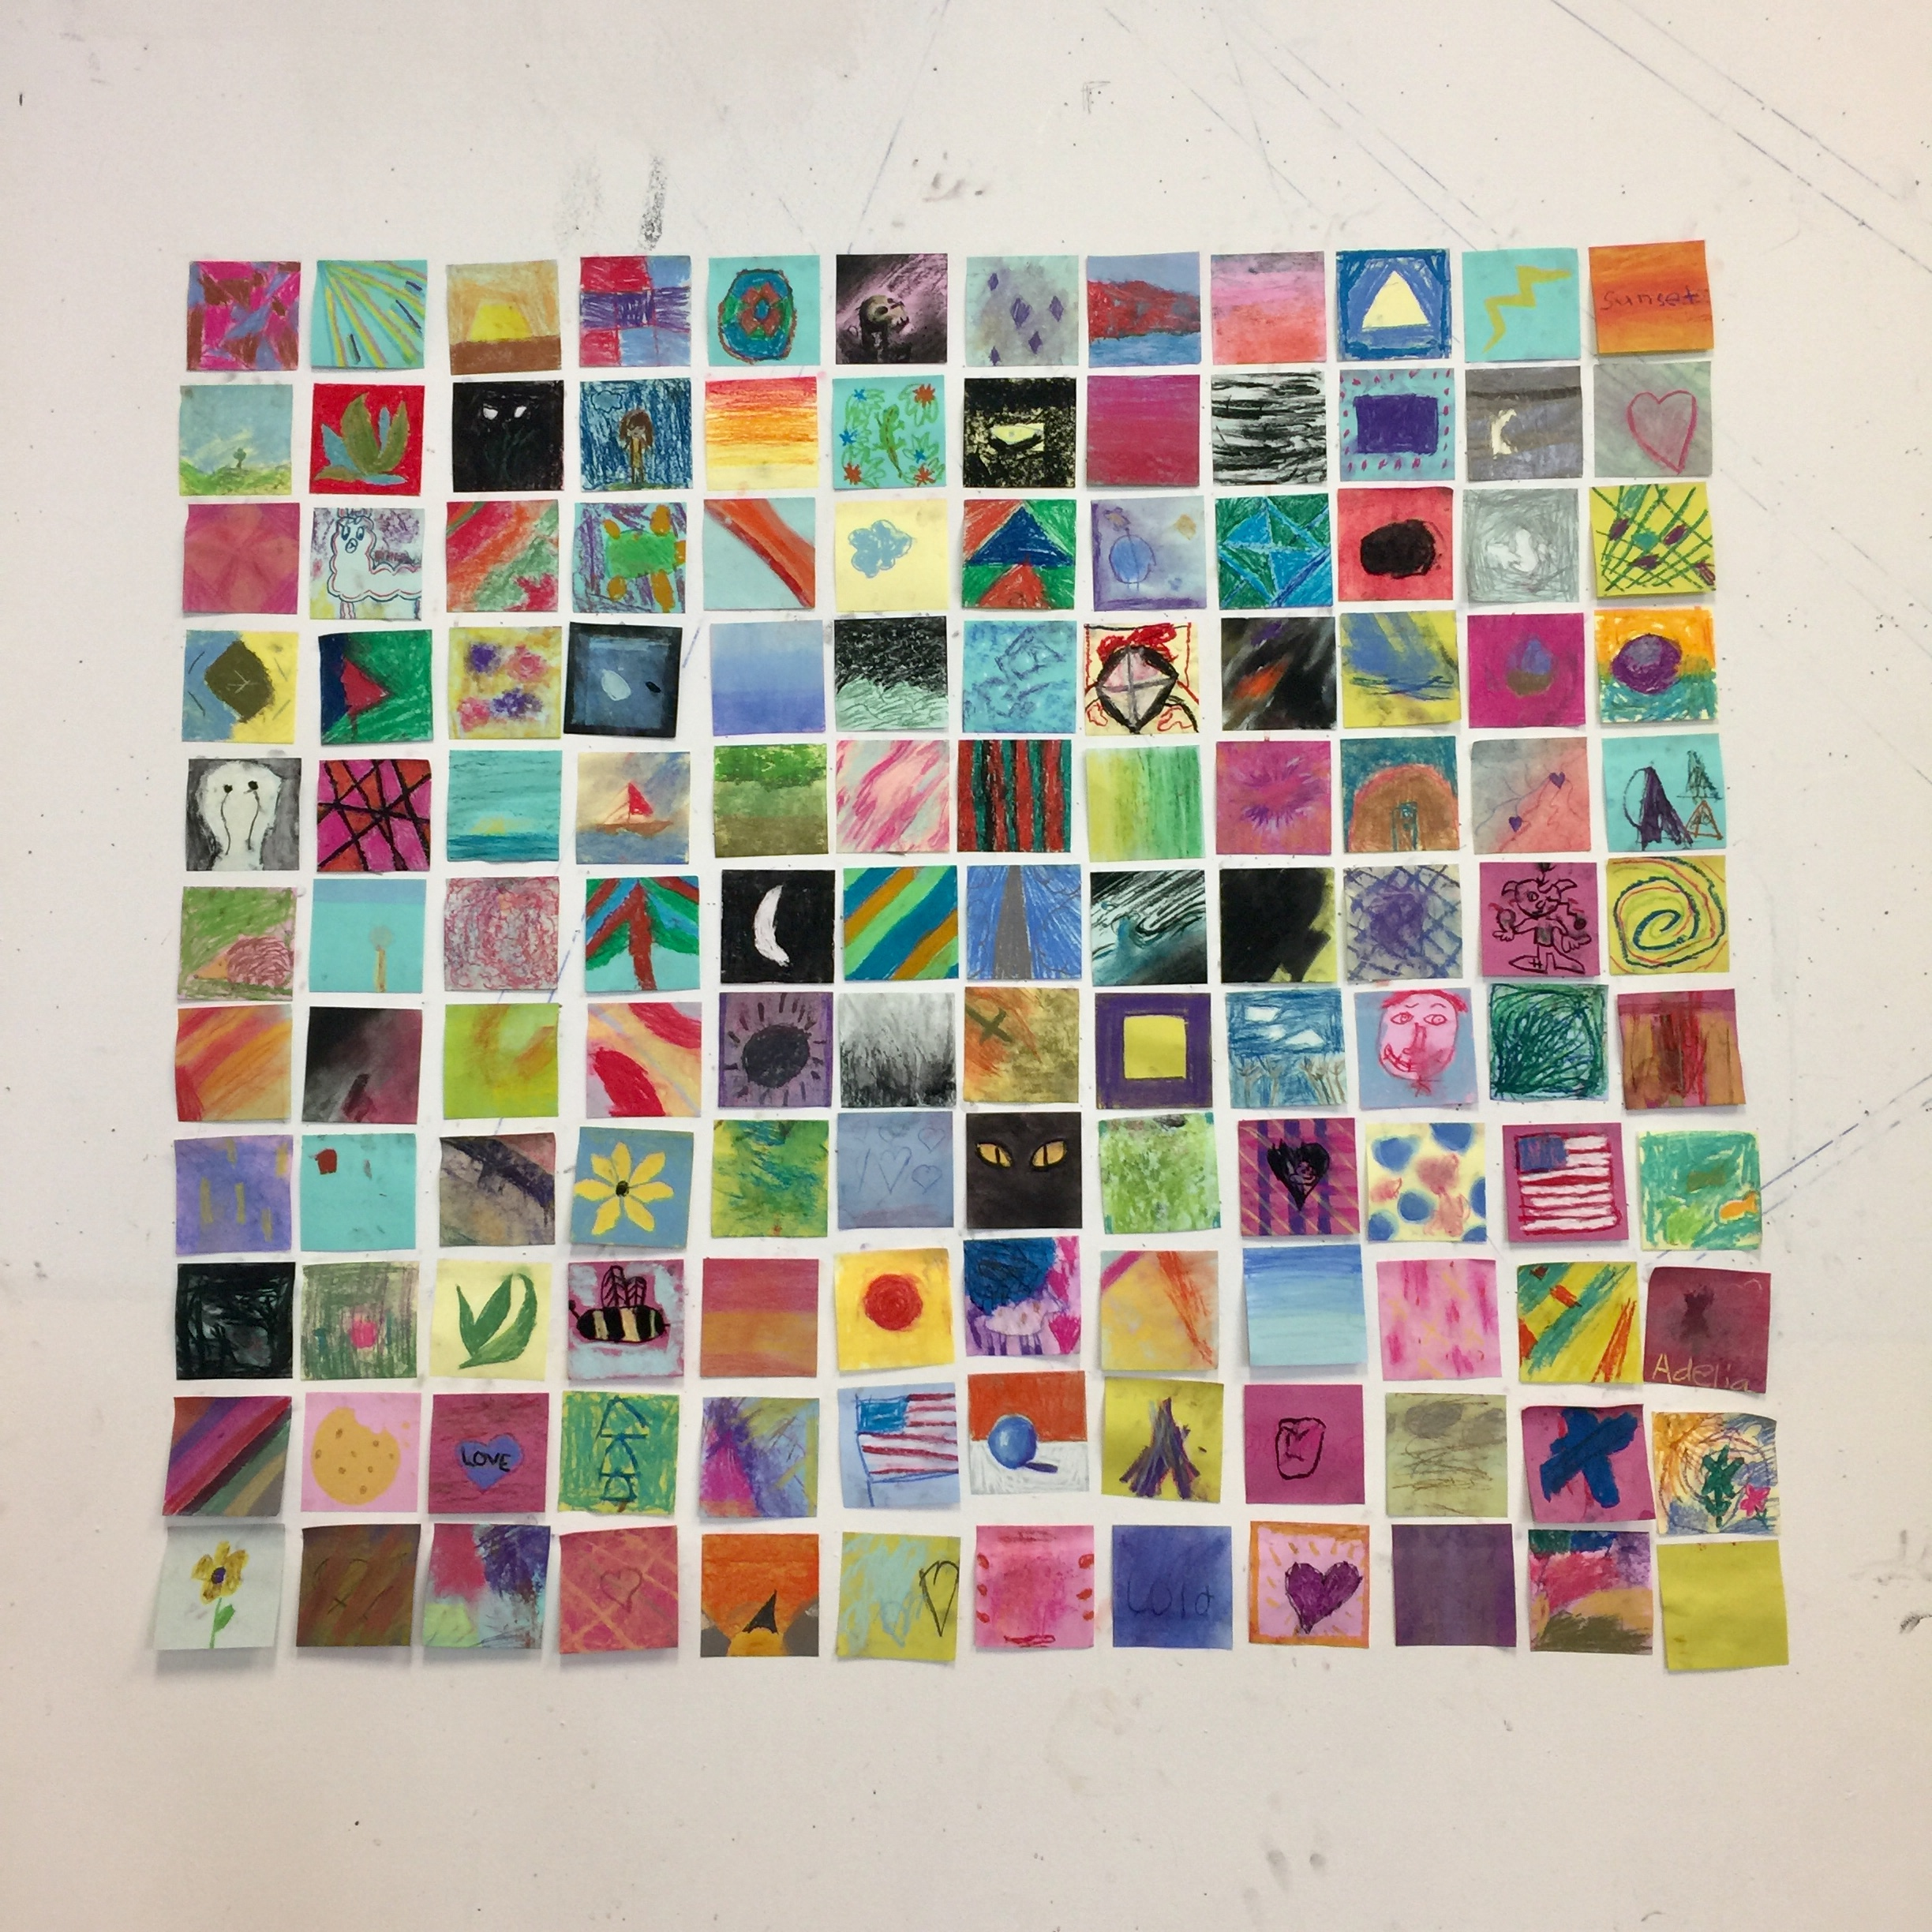 1st-6th Grade Student Work  Post-it Wall, 2019  Berkshire Country Day School